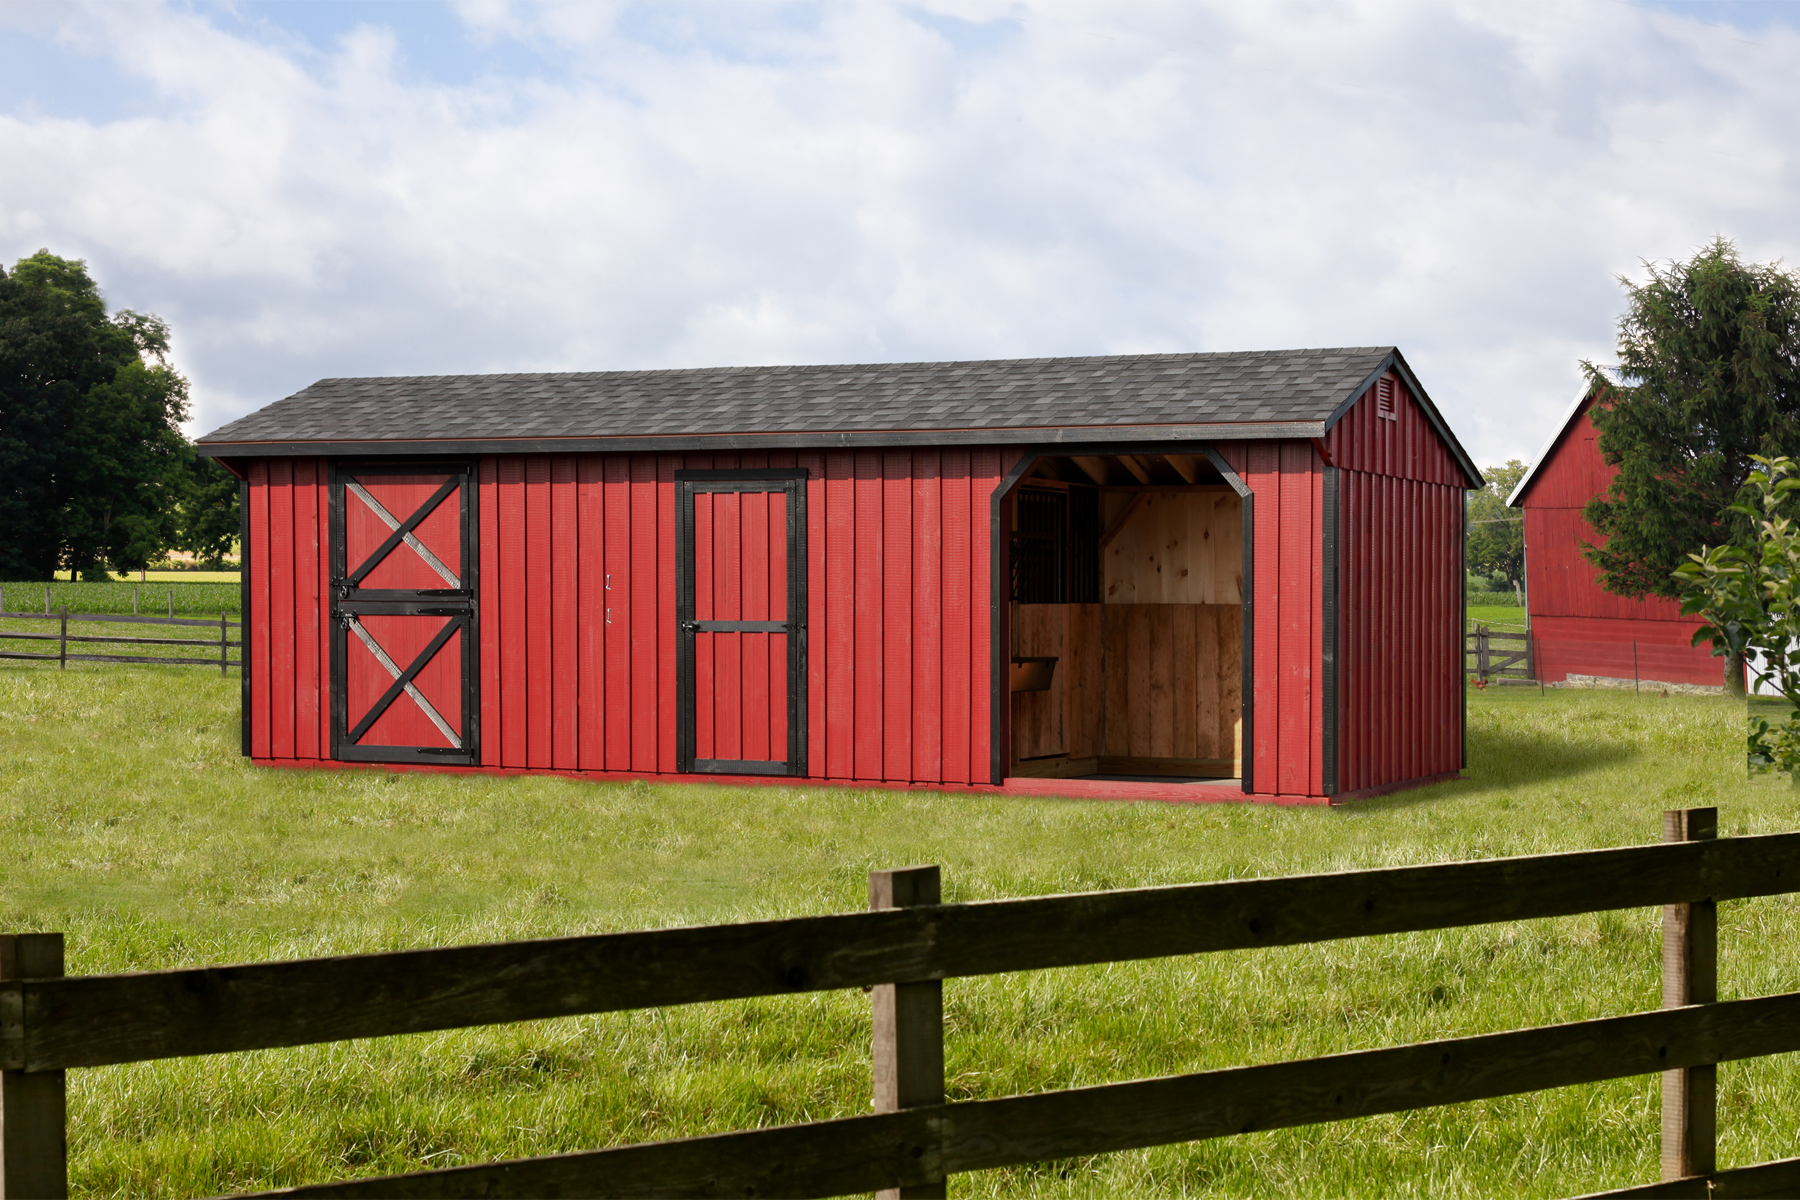 Amish Built Horse Monitor Barns For Sale In Catskill Ny Amish Barn Company